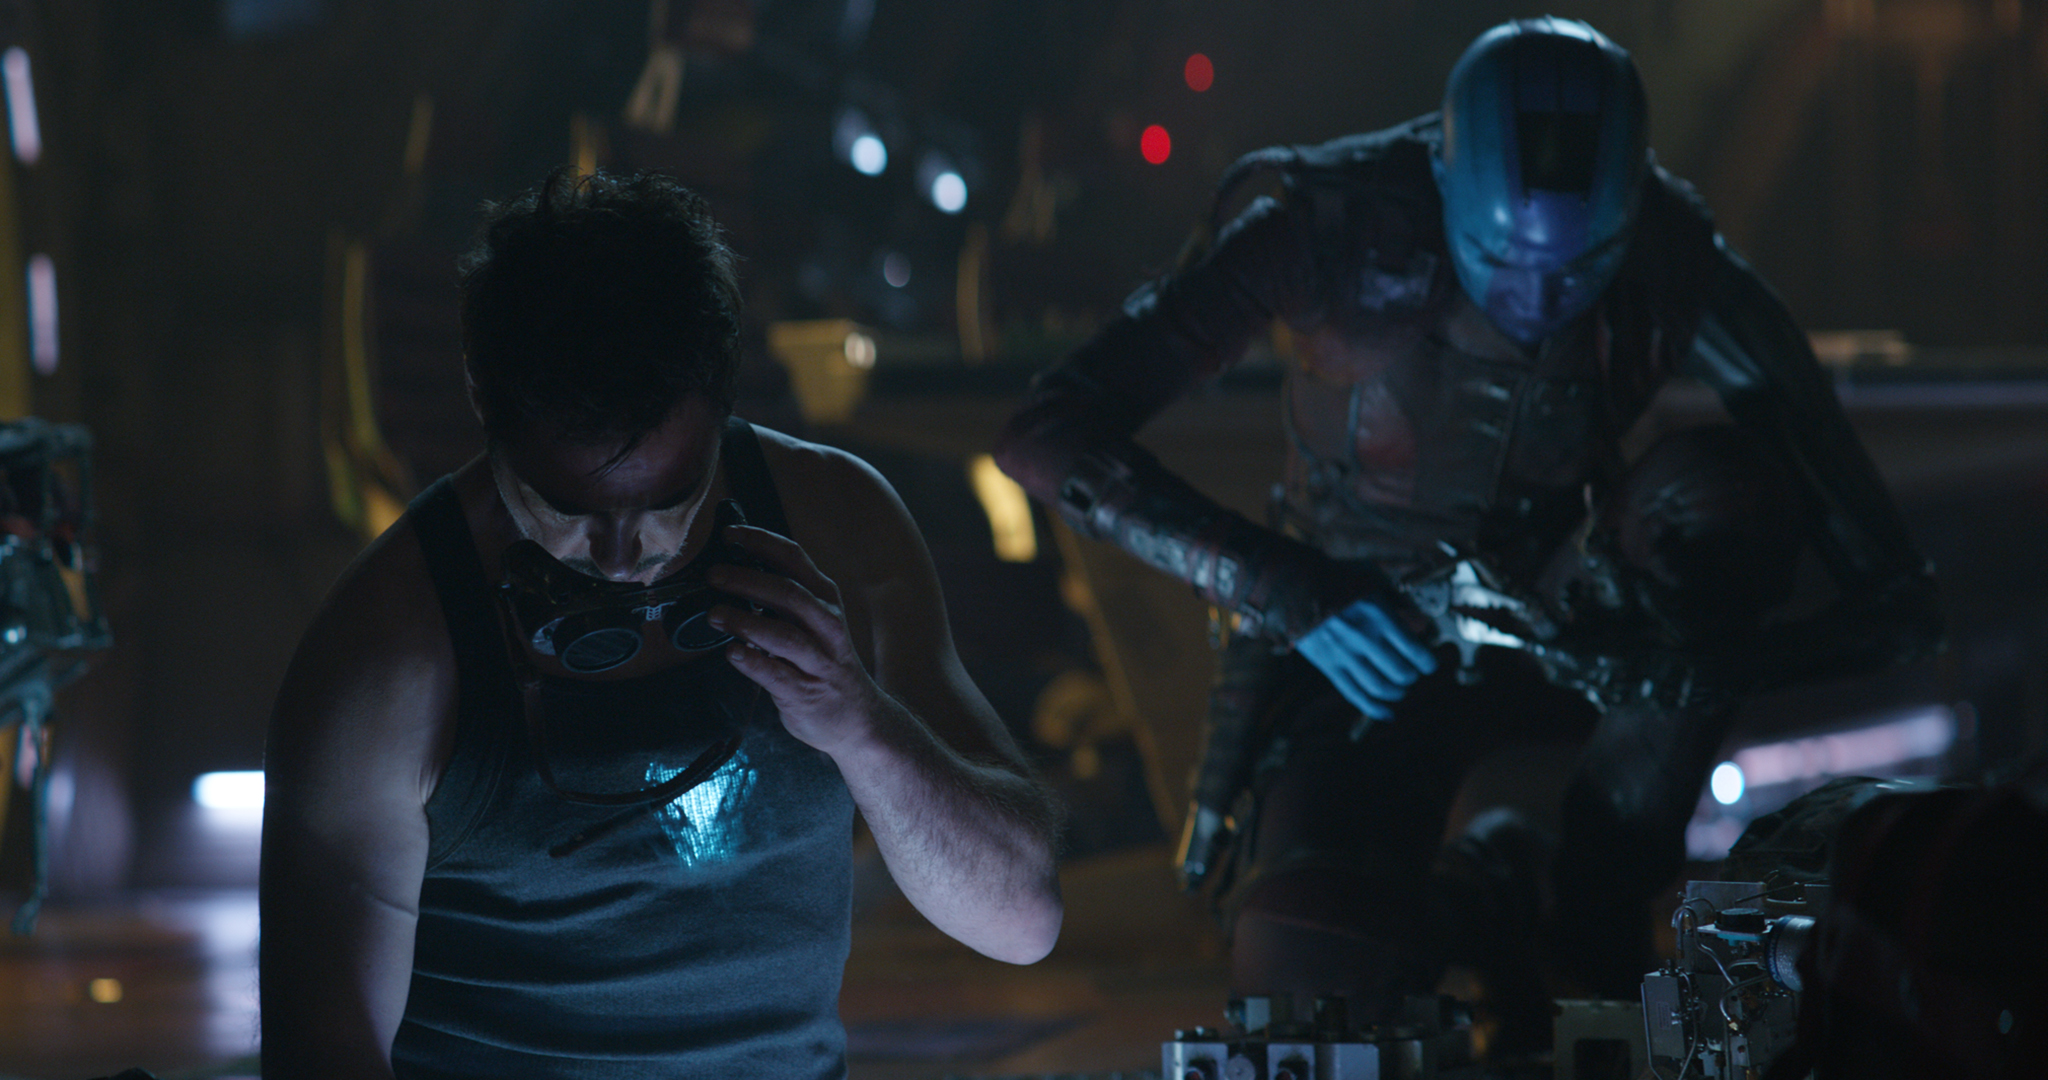 Avengers Endgame Images Tease Emotional Reunions and Team Ups 2048x1080